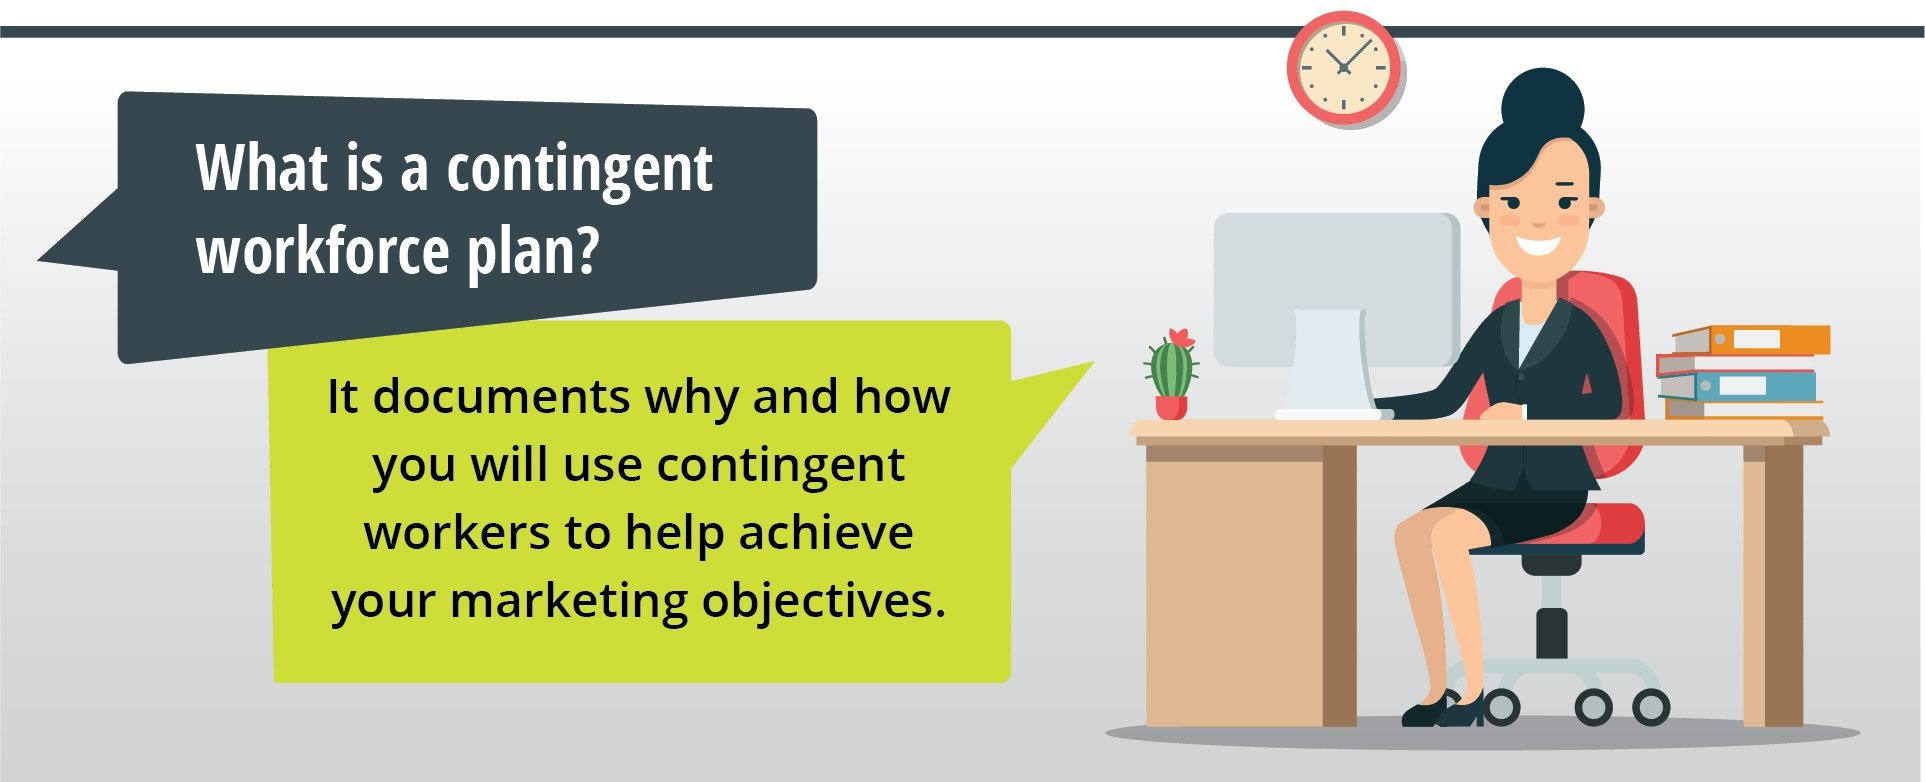 Contingent workforce plan documents why and how you will use contingent workers to help achieve your marketing objectives.